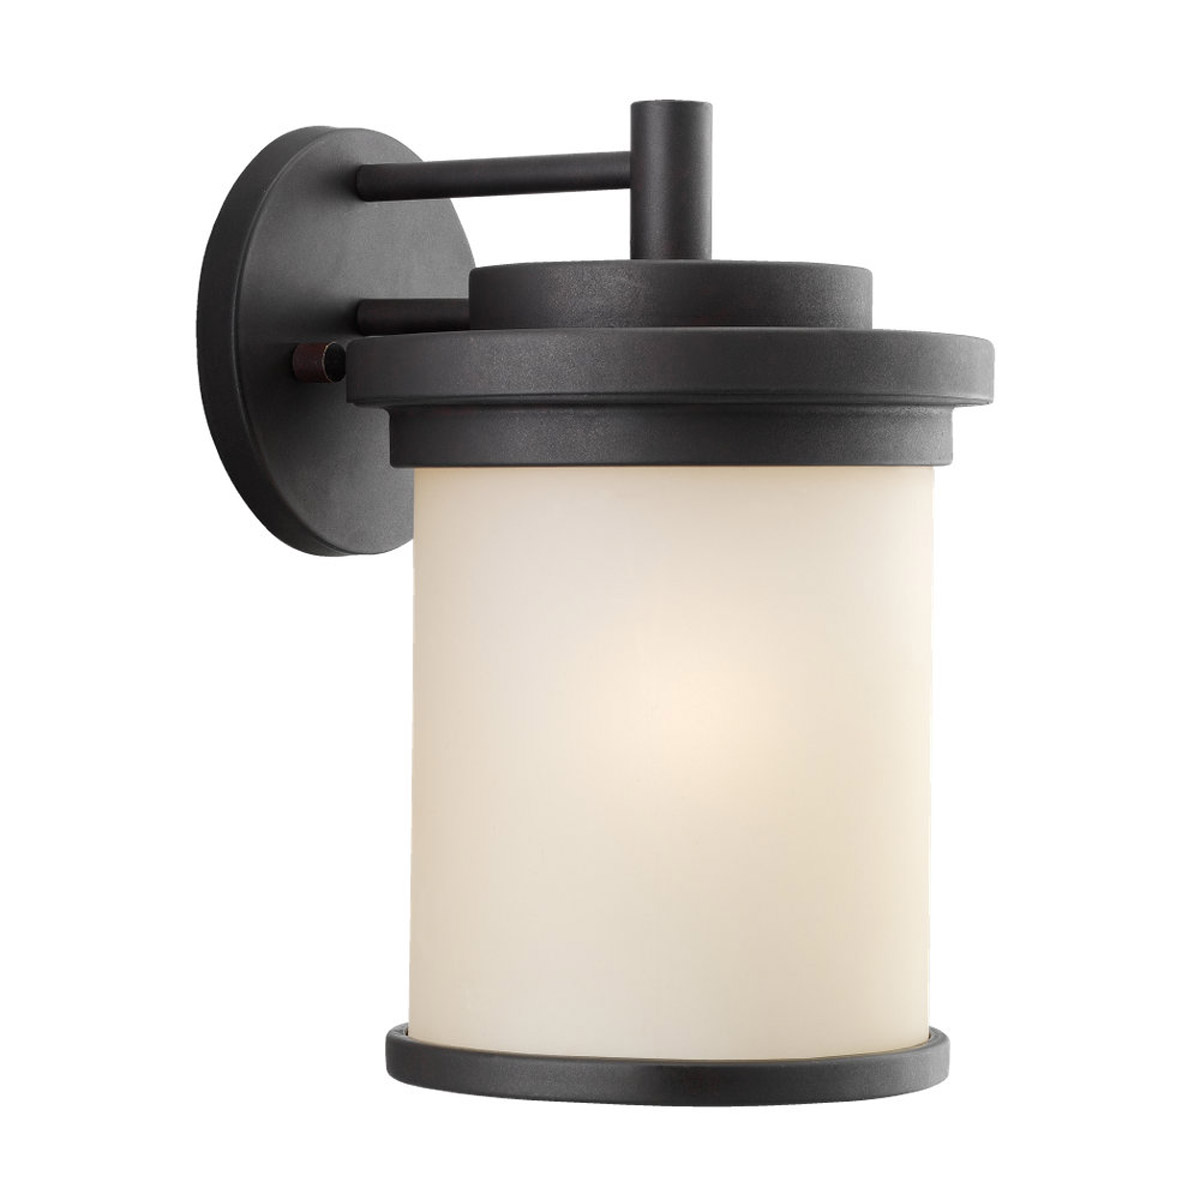 Sea Gull Lighting Winnetka 1 Light Outdoor Wall Lantern in Misted Bronze 88661-814